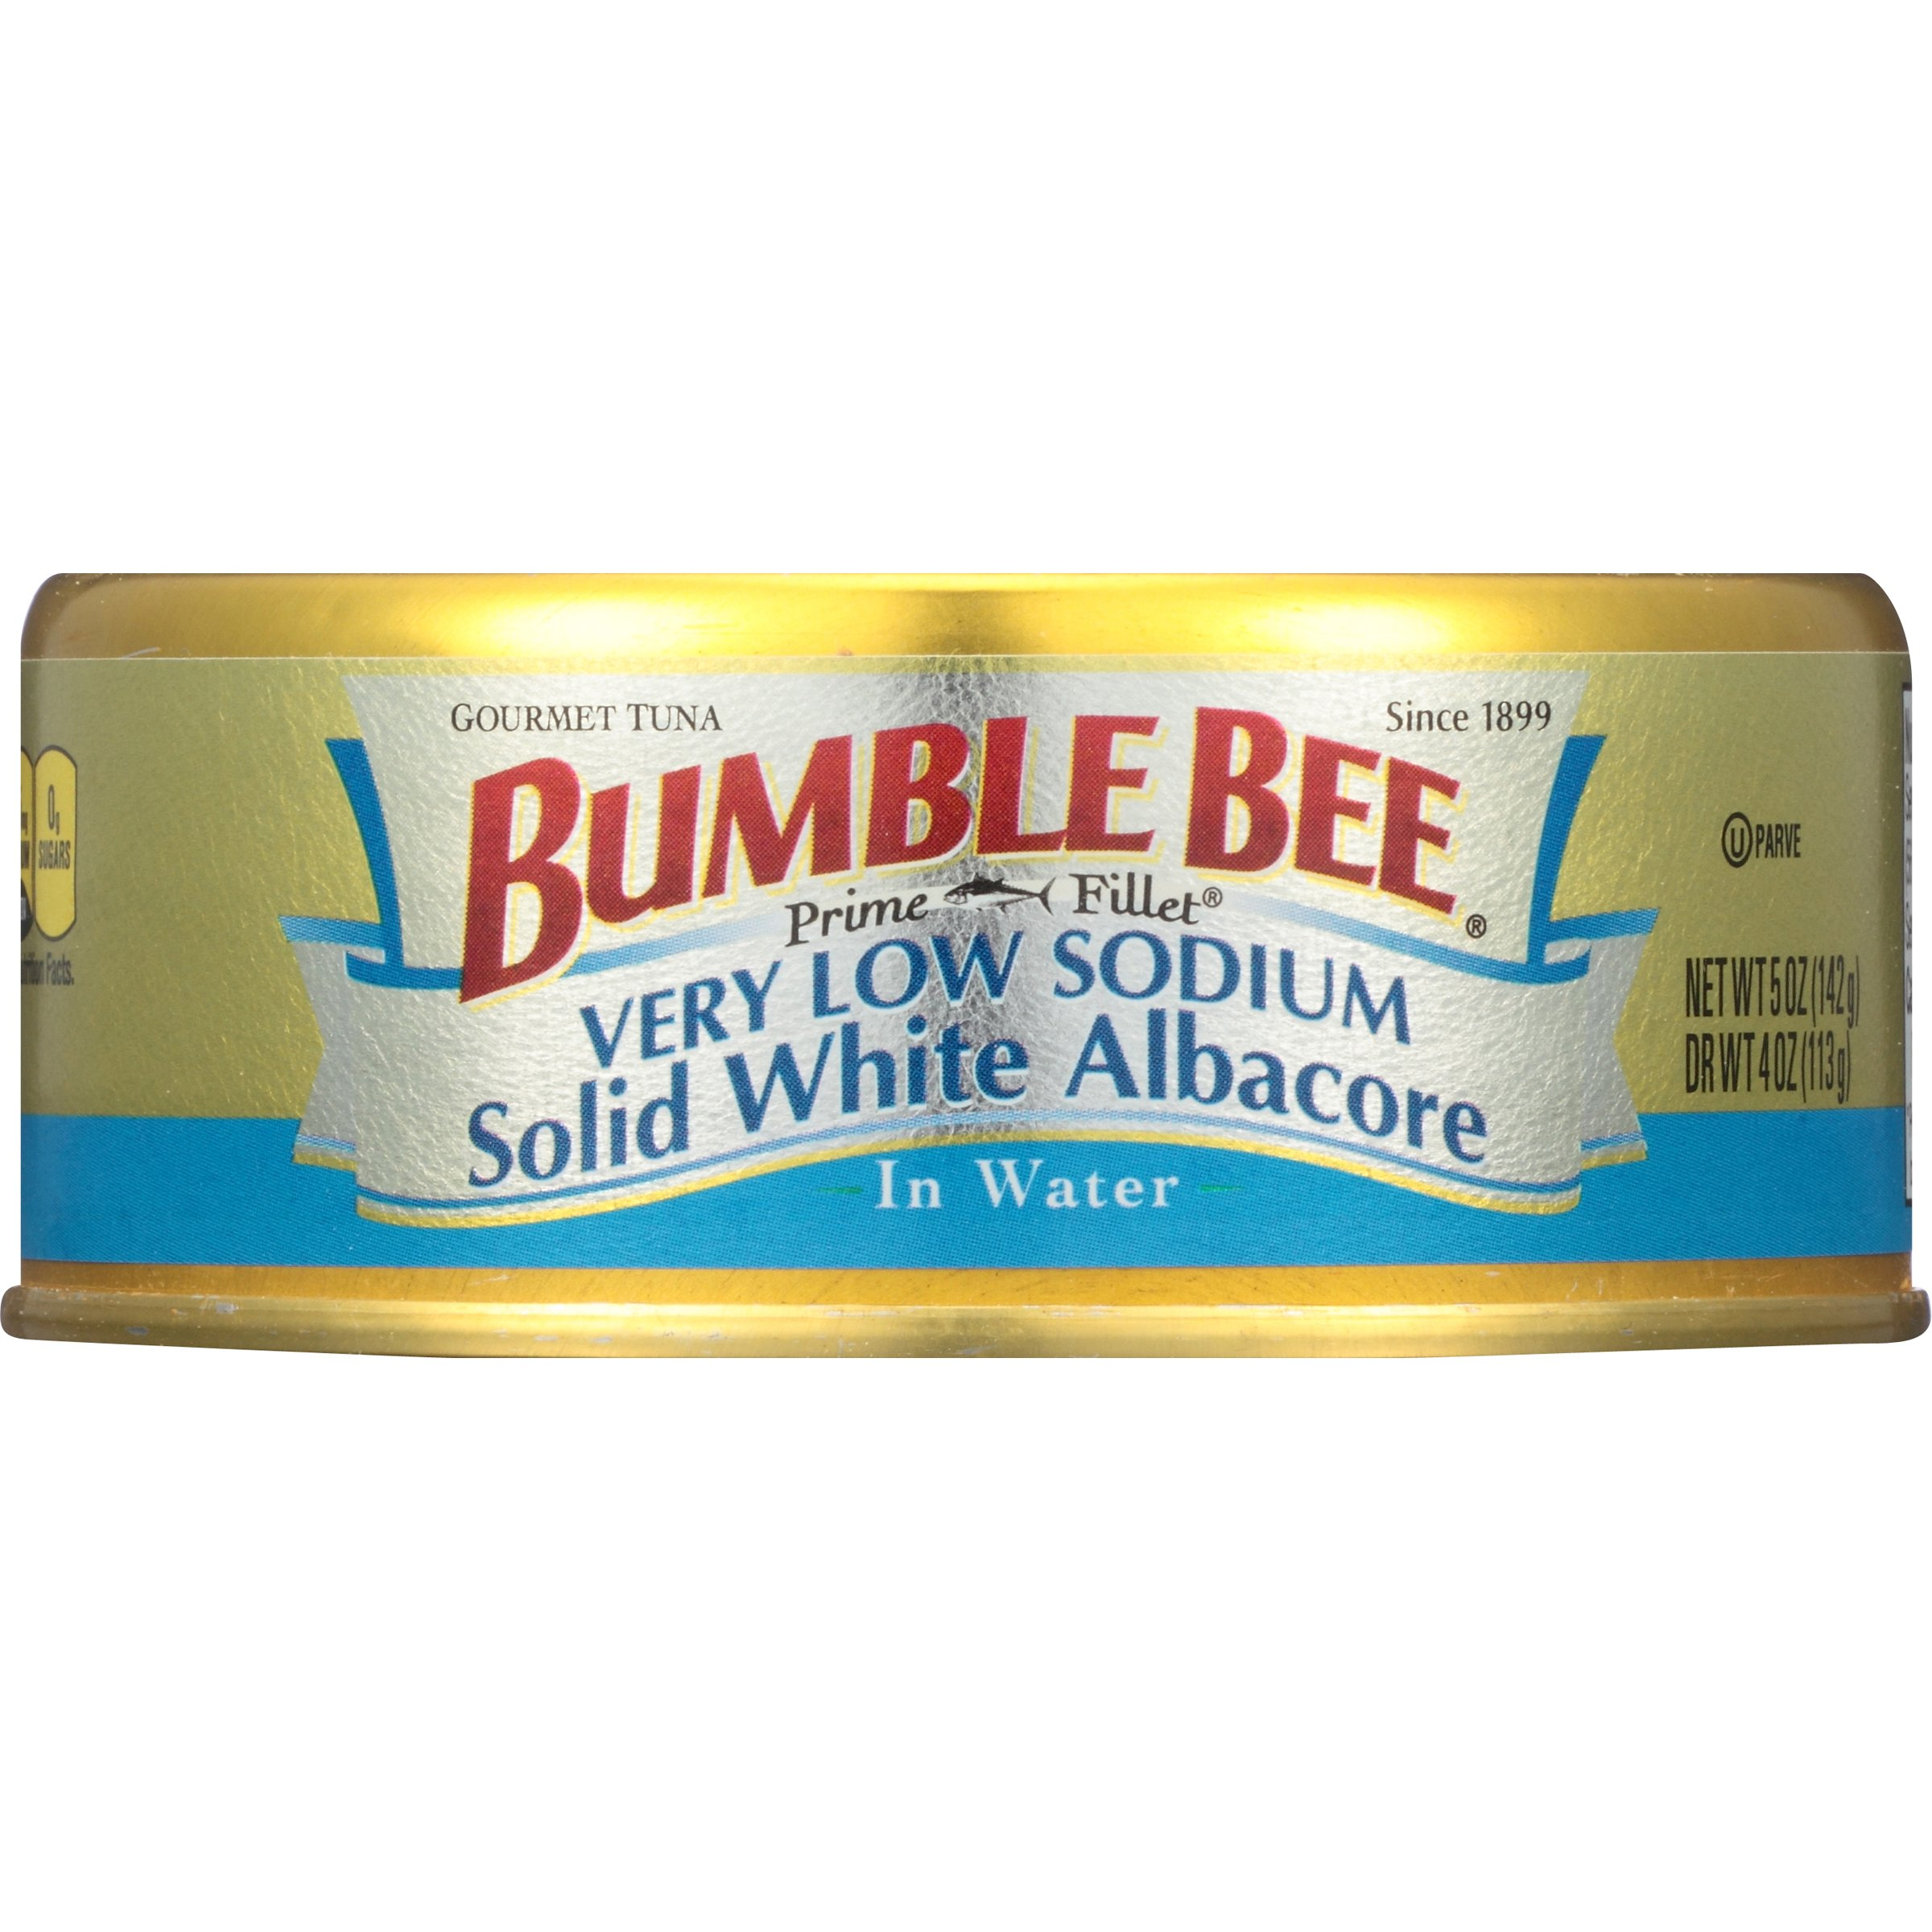 BUMBLE BEE Prime Fillet Solid White Albacore Tuna in Water, Very Low Sodium, Canned Tuna Fish, High Protein Food, 5oz Can (Pack of 12)